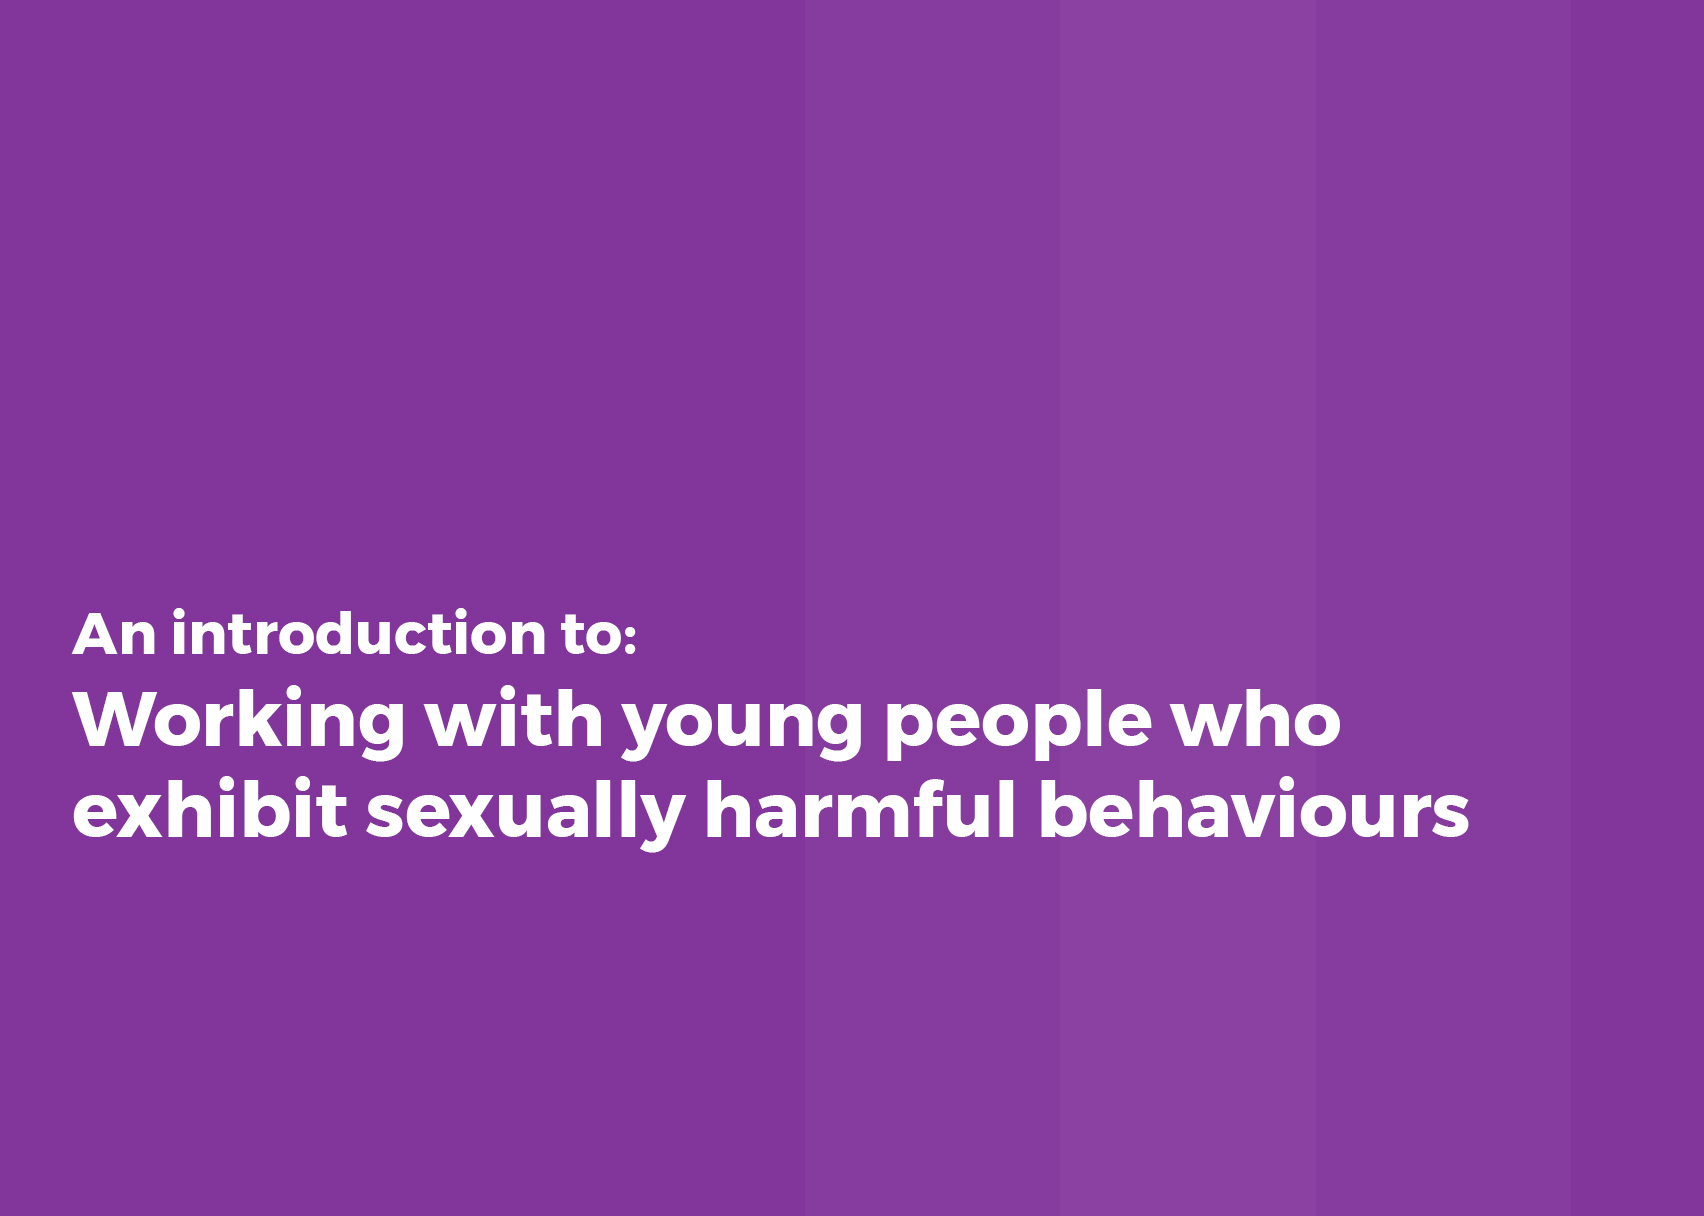 Working with young people who exhibit sexually harmful behaviours